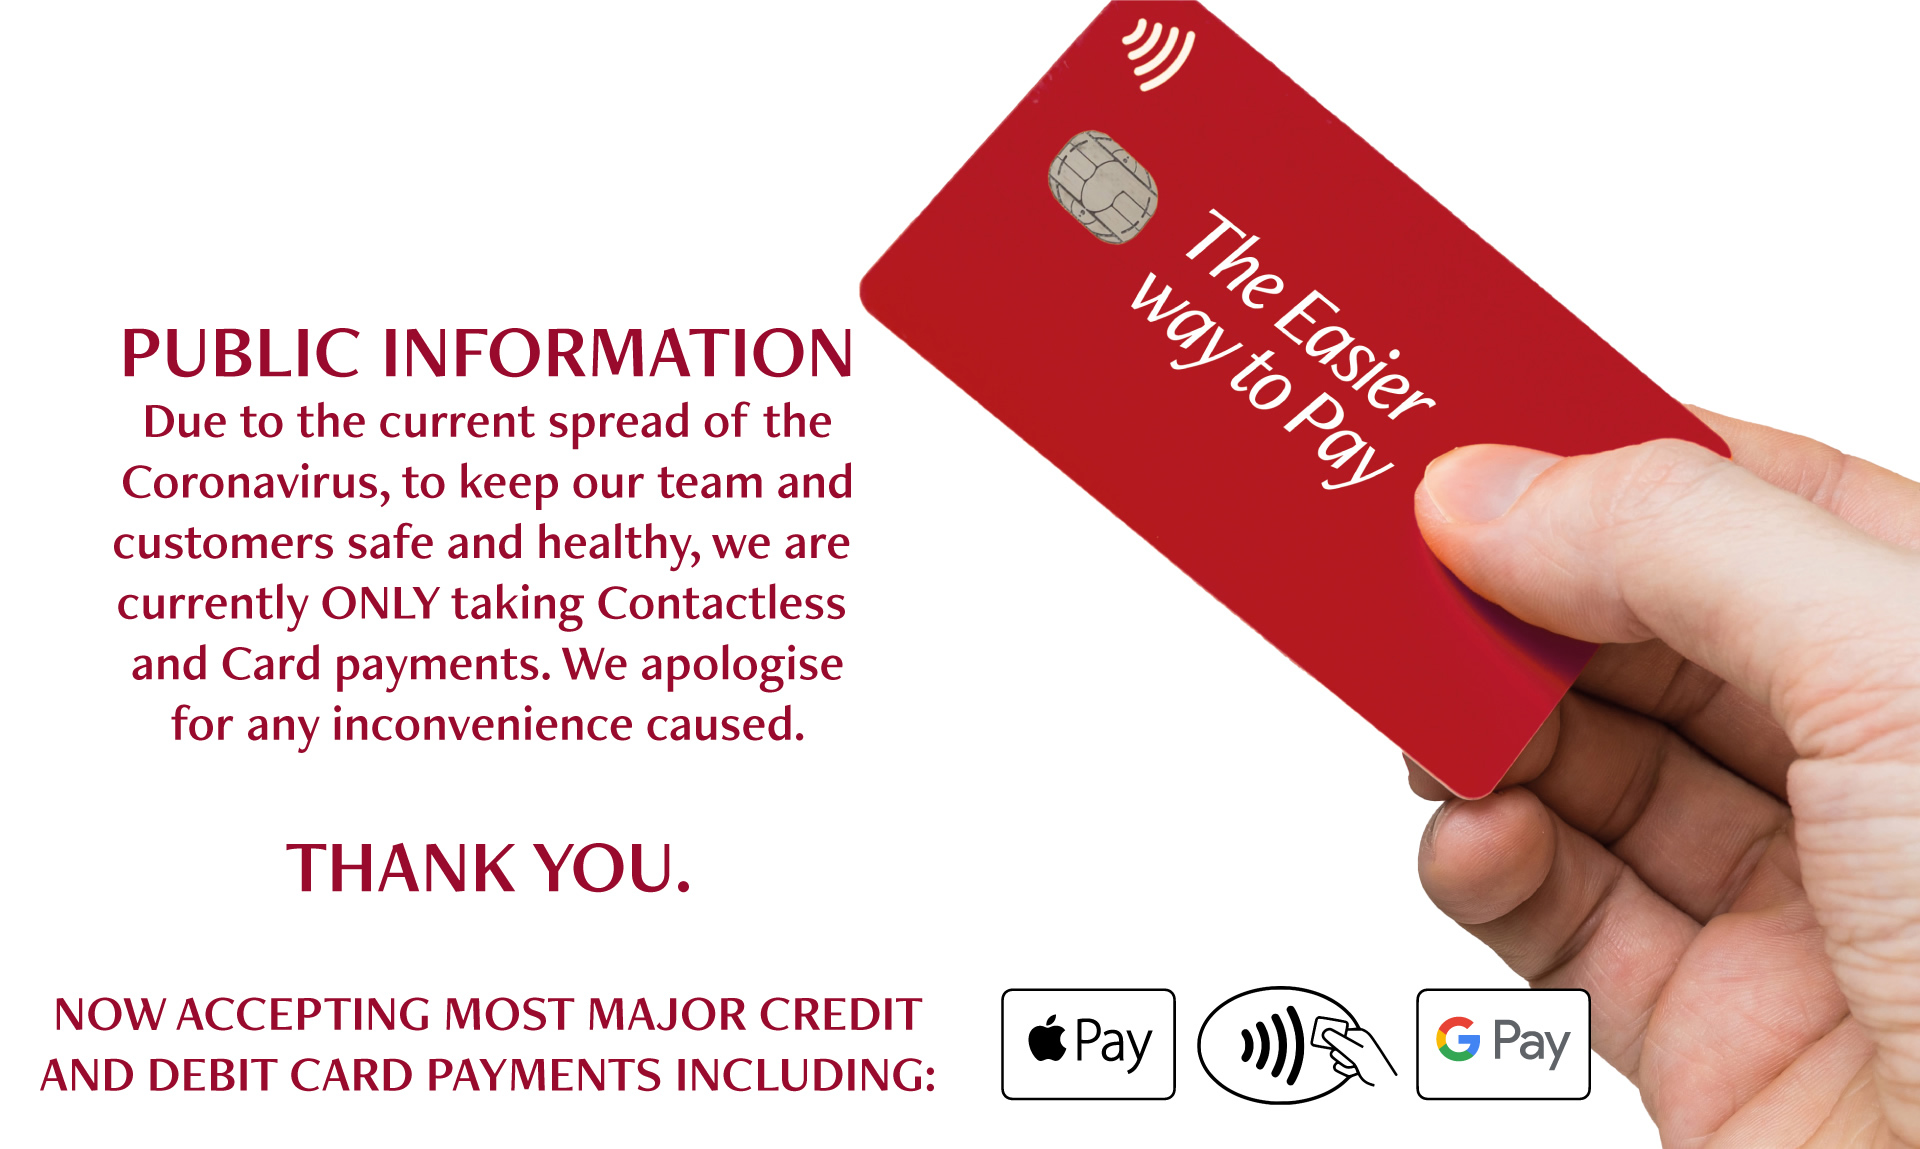 Public information. Due to the current spread of the Coronavirus, to keep our team and customers safe and healthy, we are currently ONLY taking contactless and card payments. We apologise for any inconvenience caused. Thank you. Now accepting most major credit and debit card payments including: Apple Pay, Google Pay, Contactless Pay